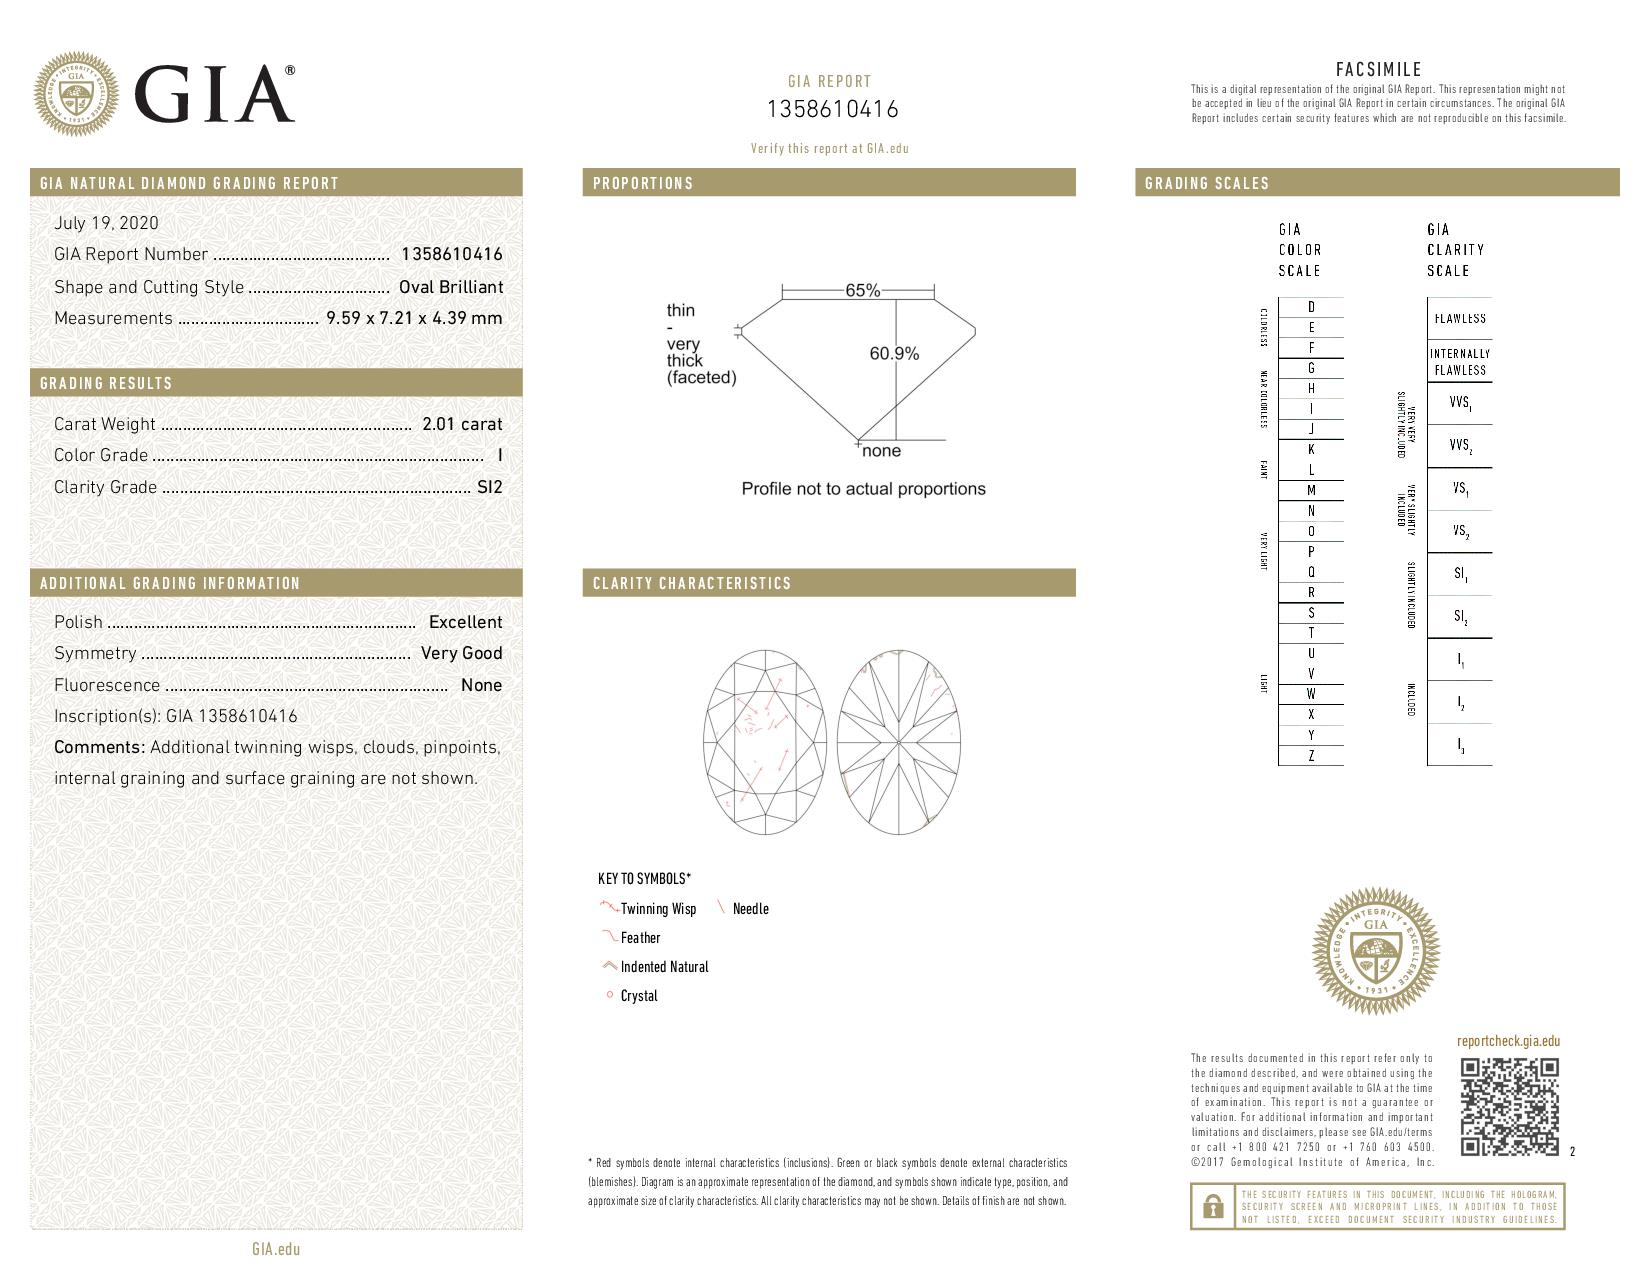 This is a 2.01 carat oval shape, I color, SI2 clarity natural diamond accompanied by a GIA grading report.